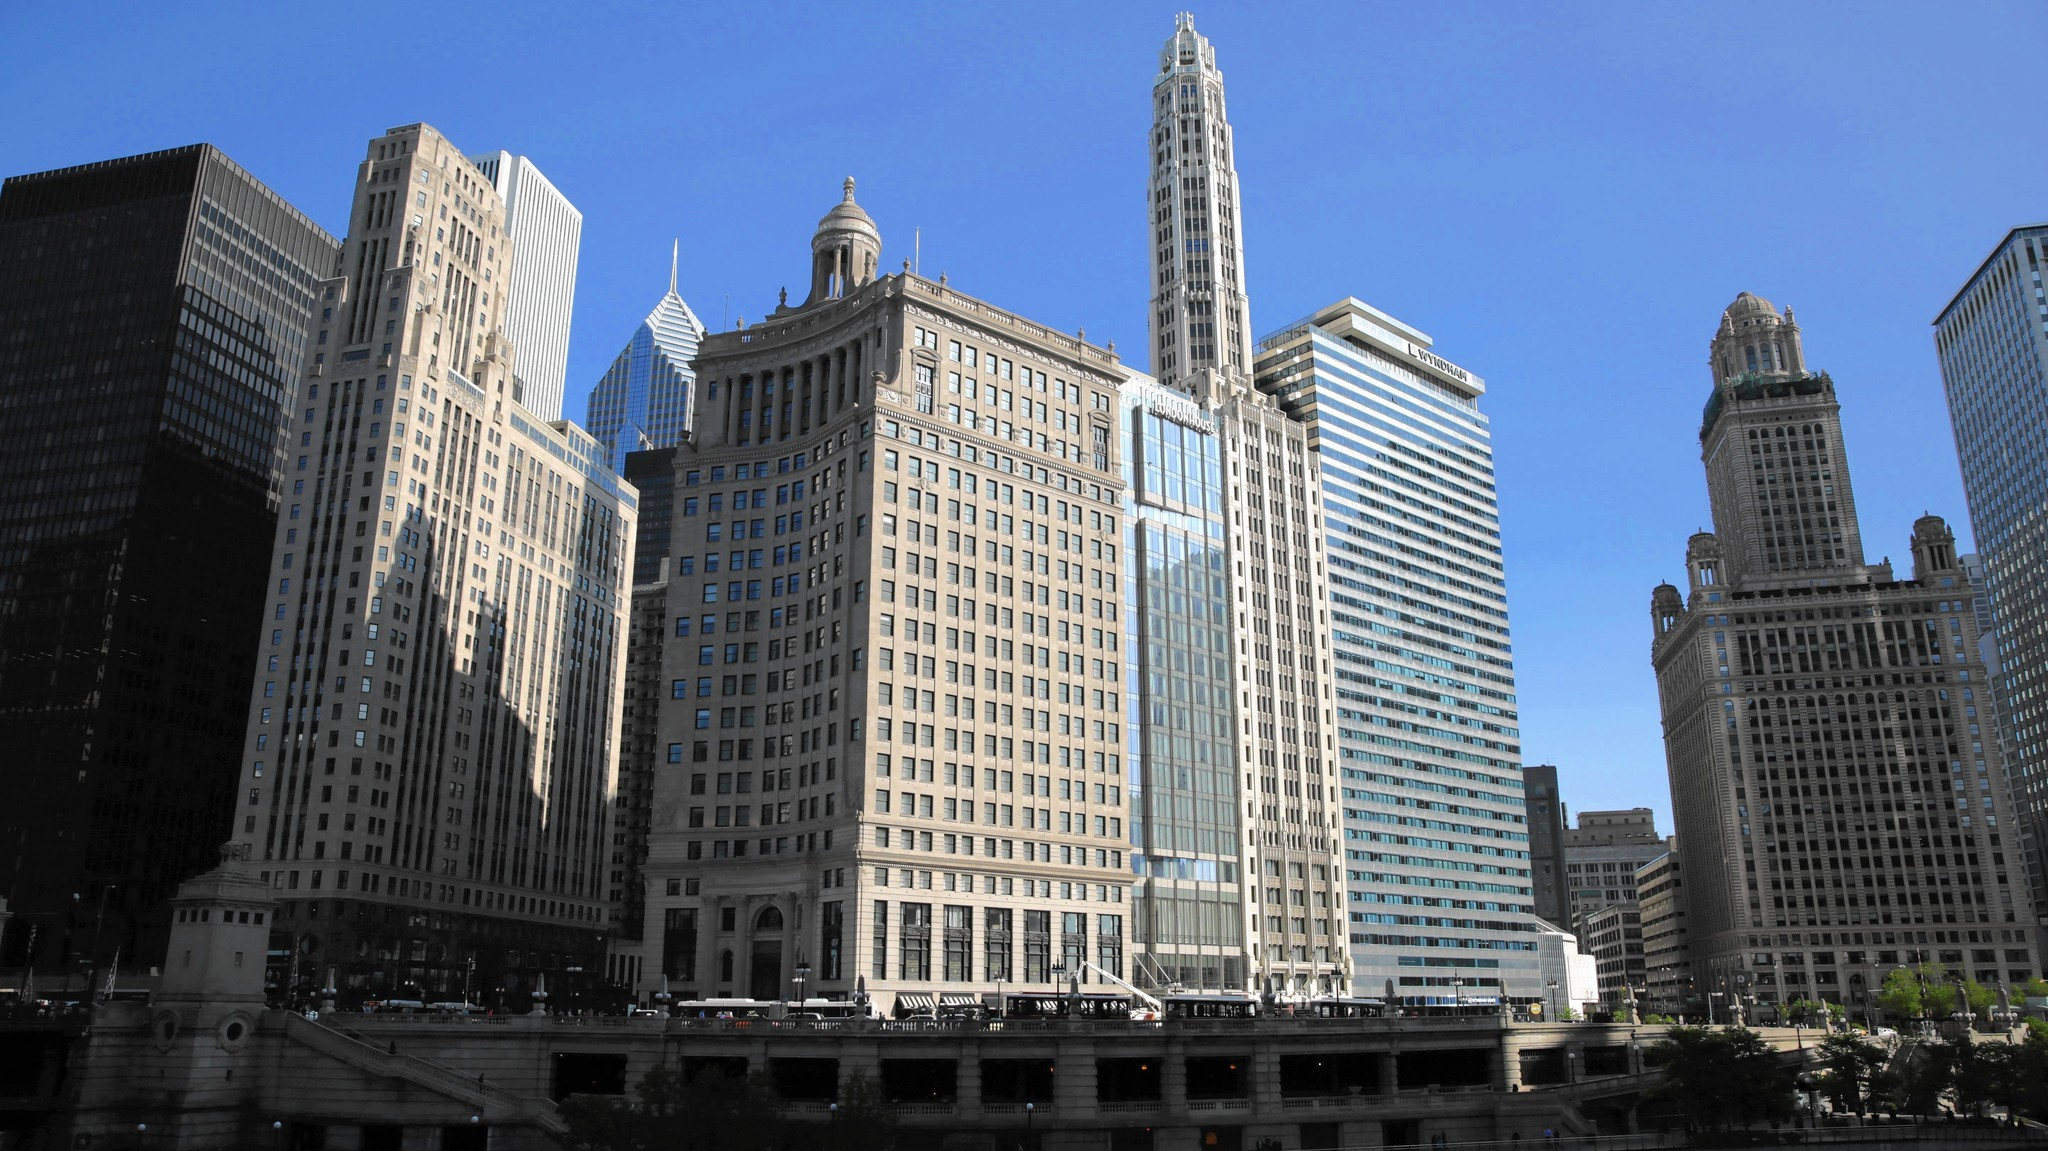 Michigan Avenue classic comes back to life with a 21st